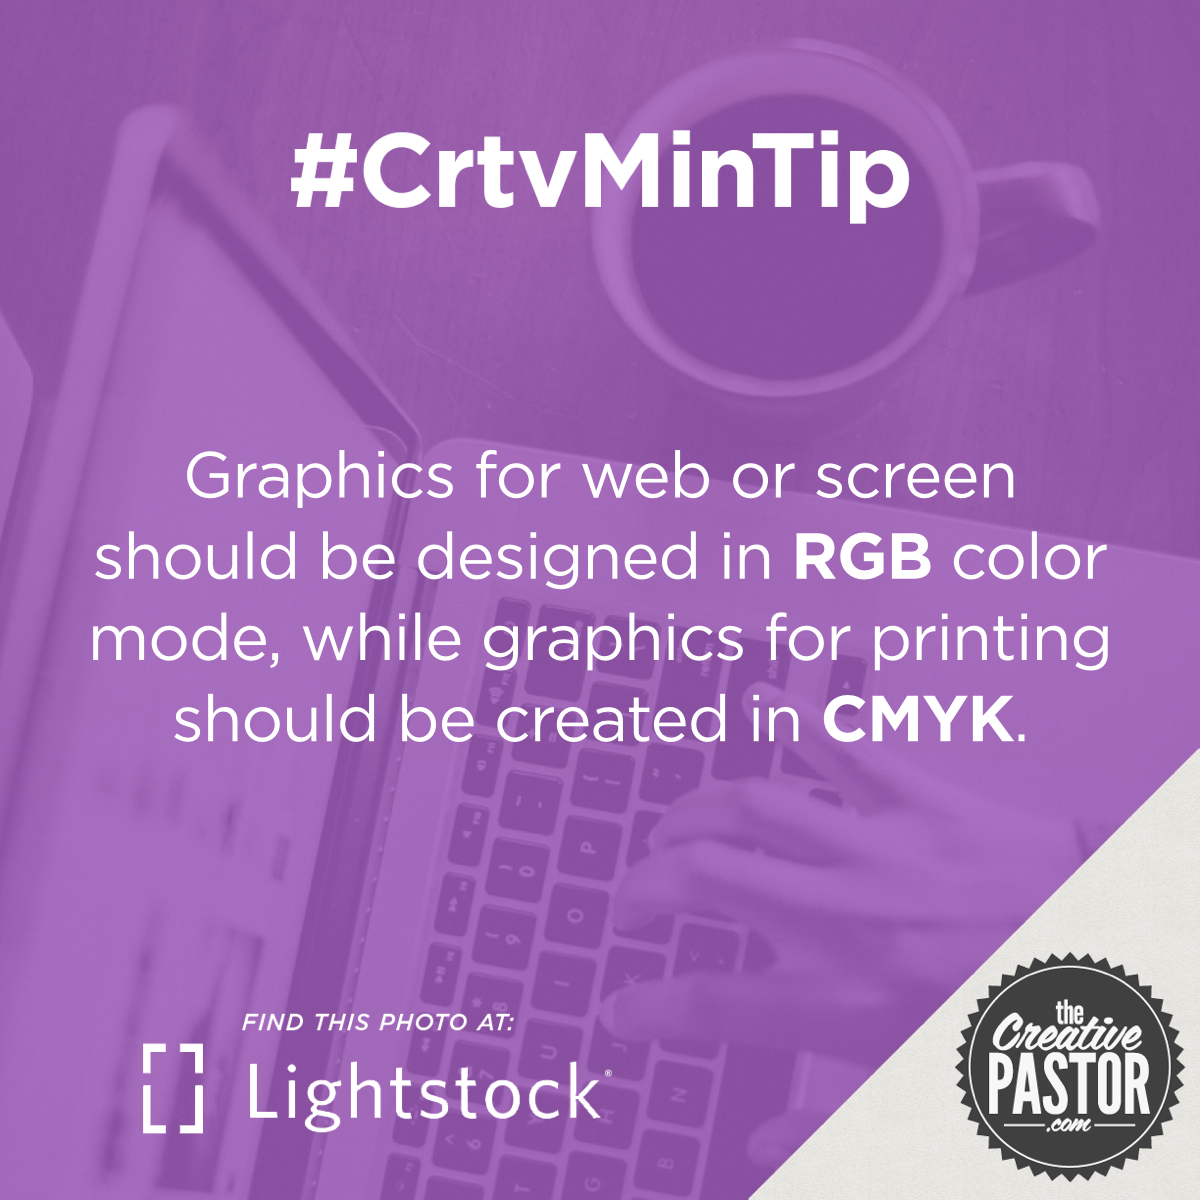 Graphics for web or screen should be designed in RGB color mode, while graphics for printing should be created in CMYK.